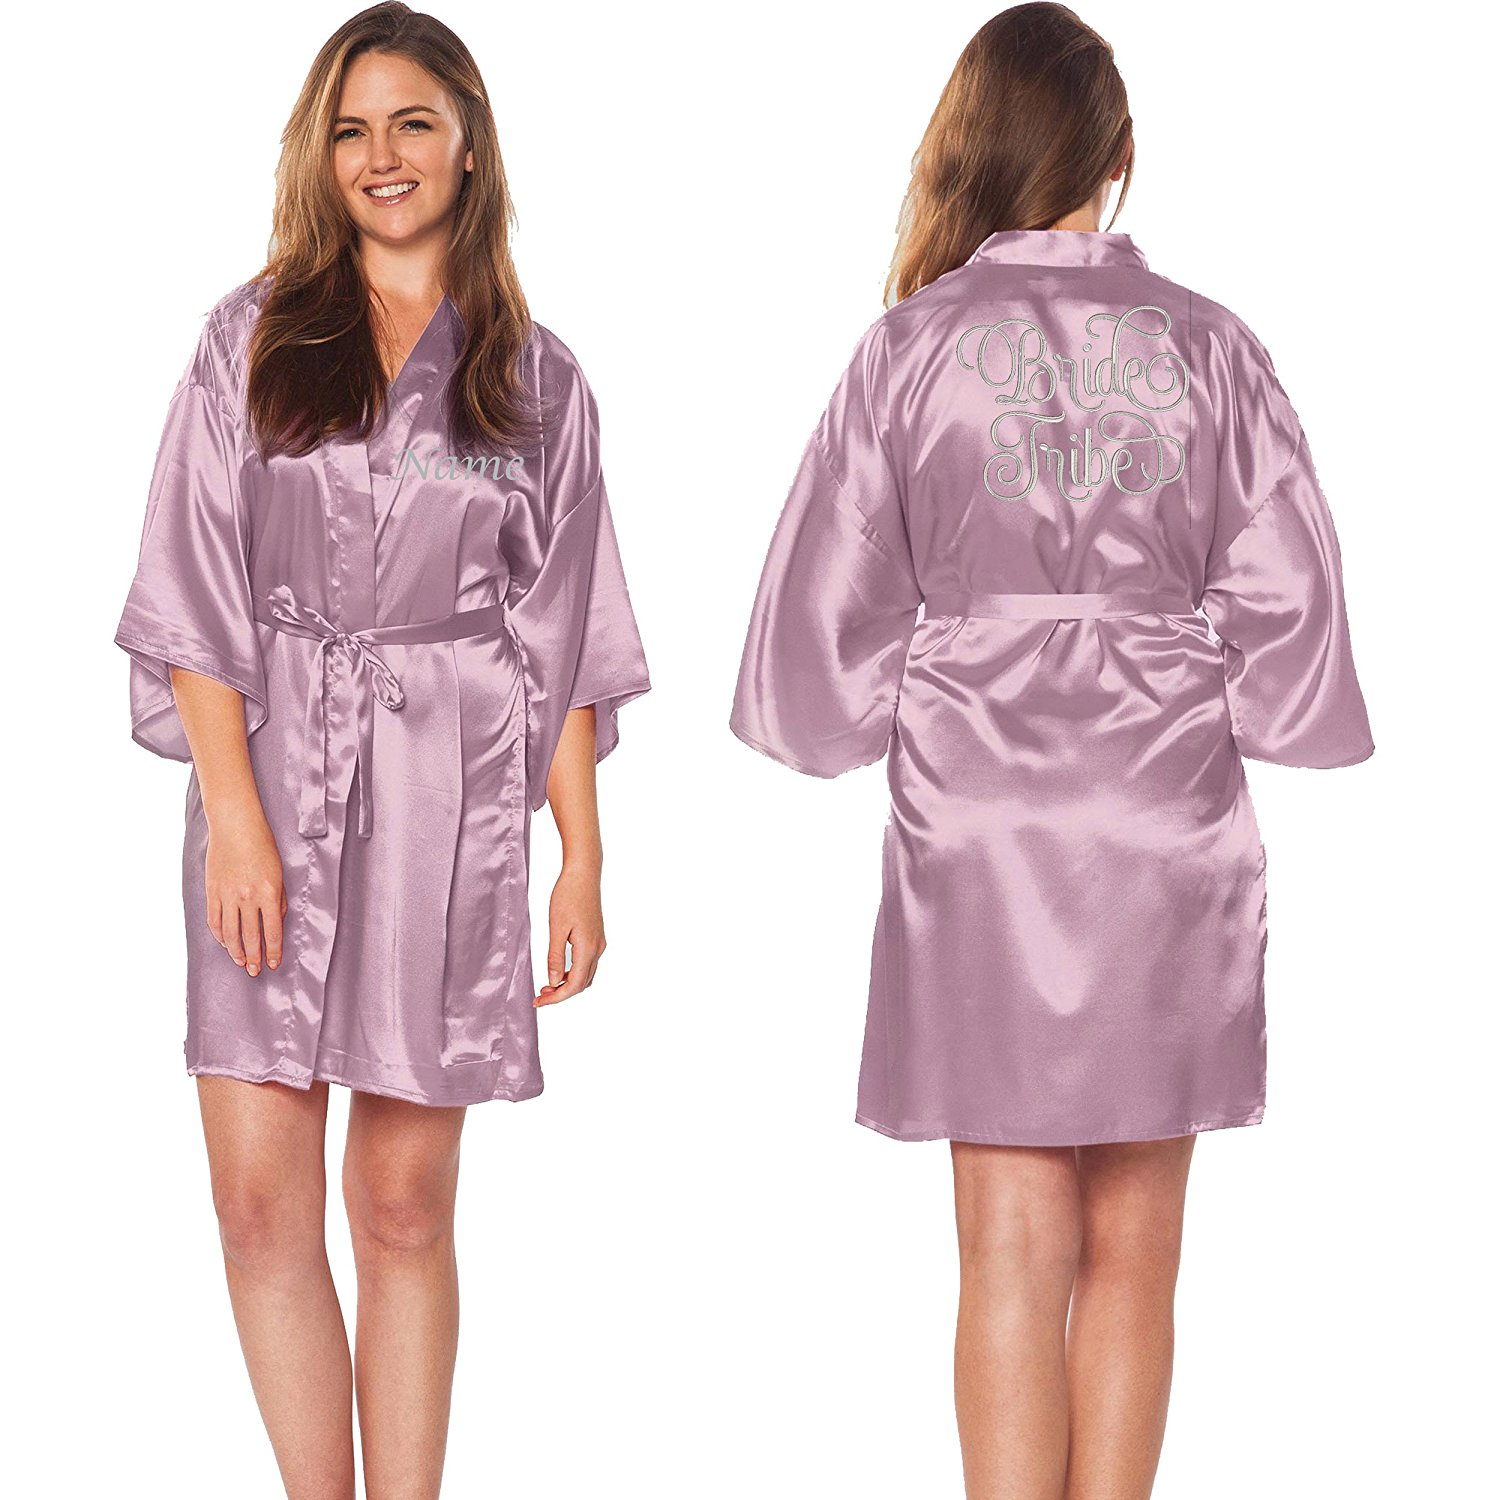 Custom Apparel R Us Bride Tribe Silver Embroidered Customize Name Satin Robes Wedding Party